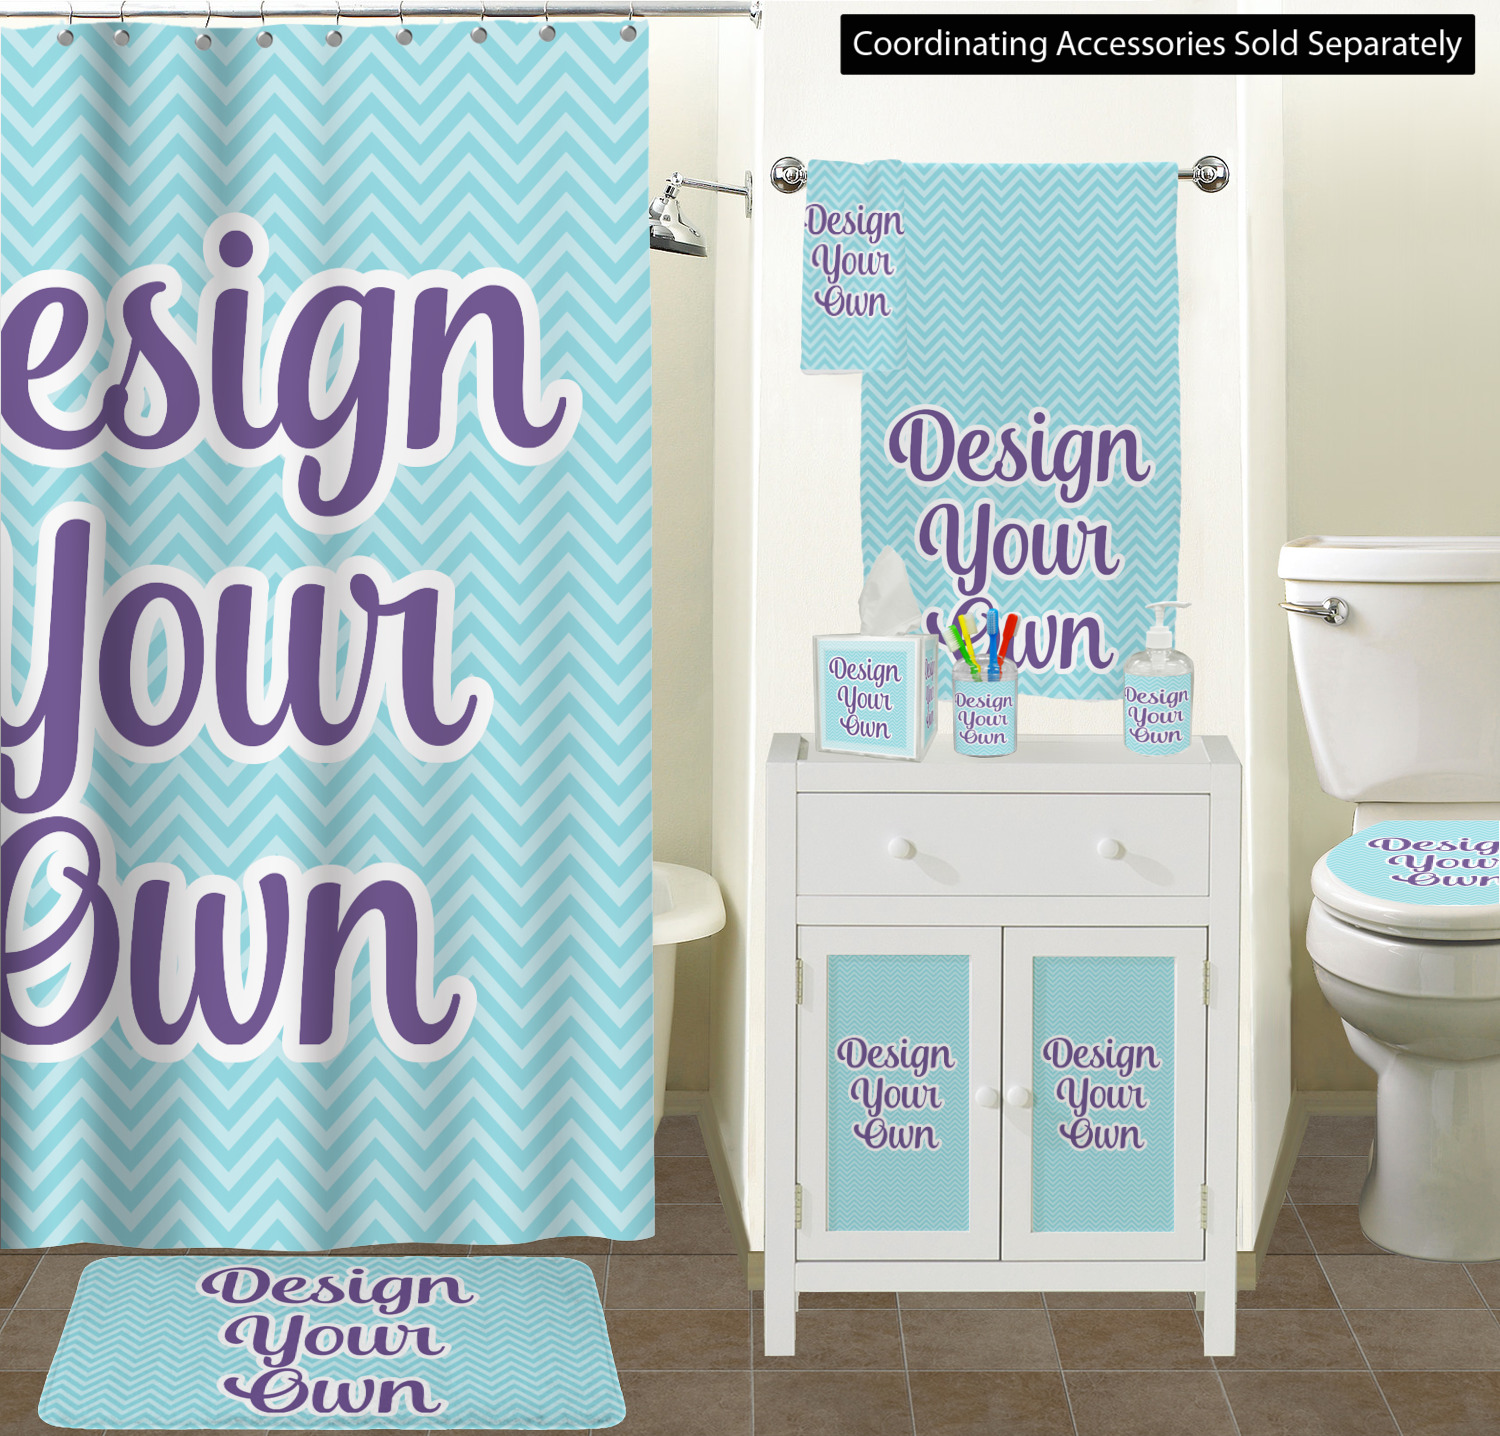 Design Your Own Bathroom Layout: Design Your Own Toilet Seat Decal